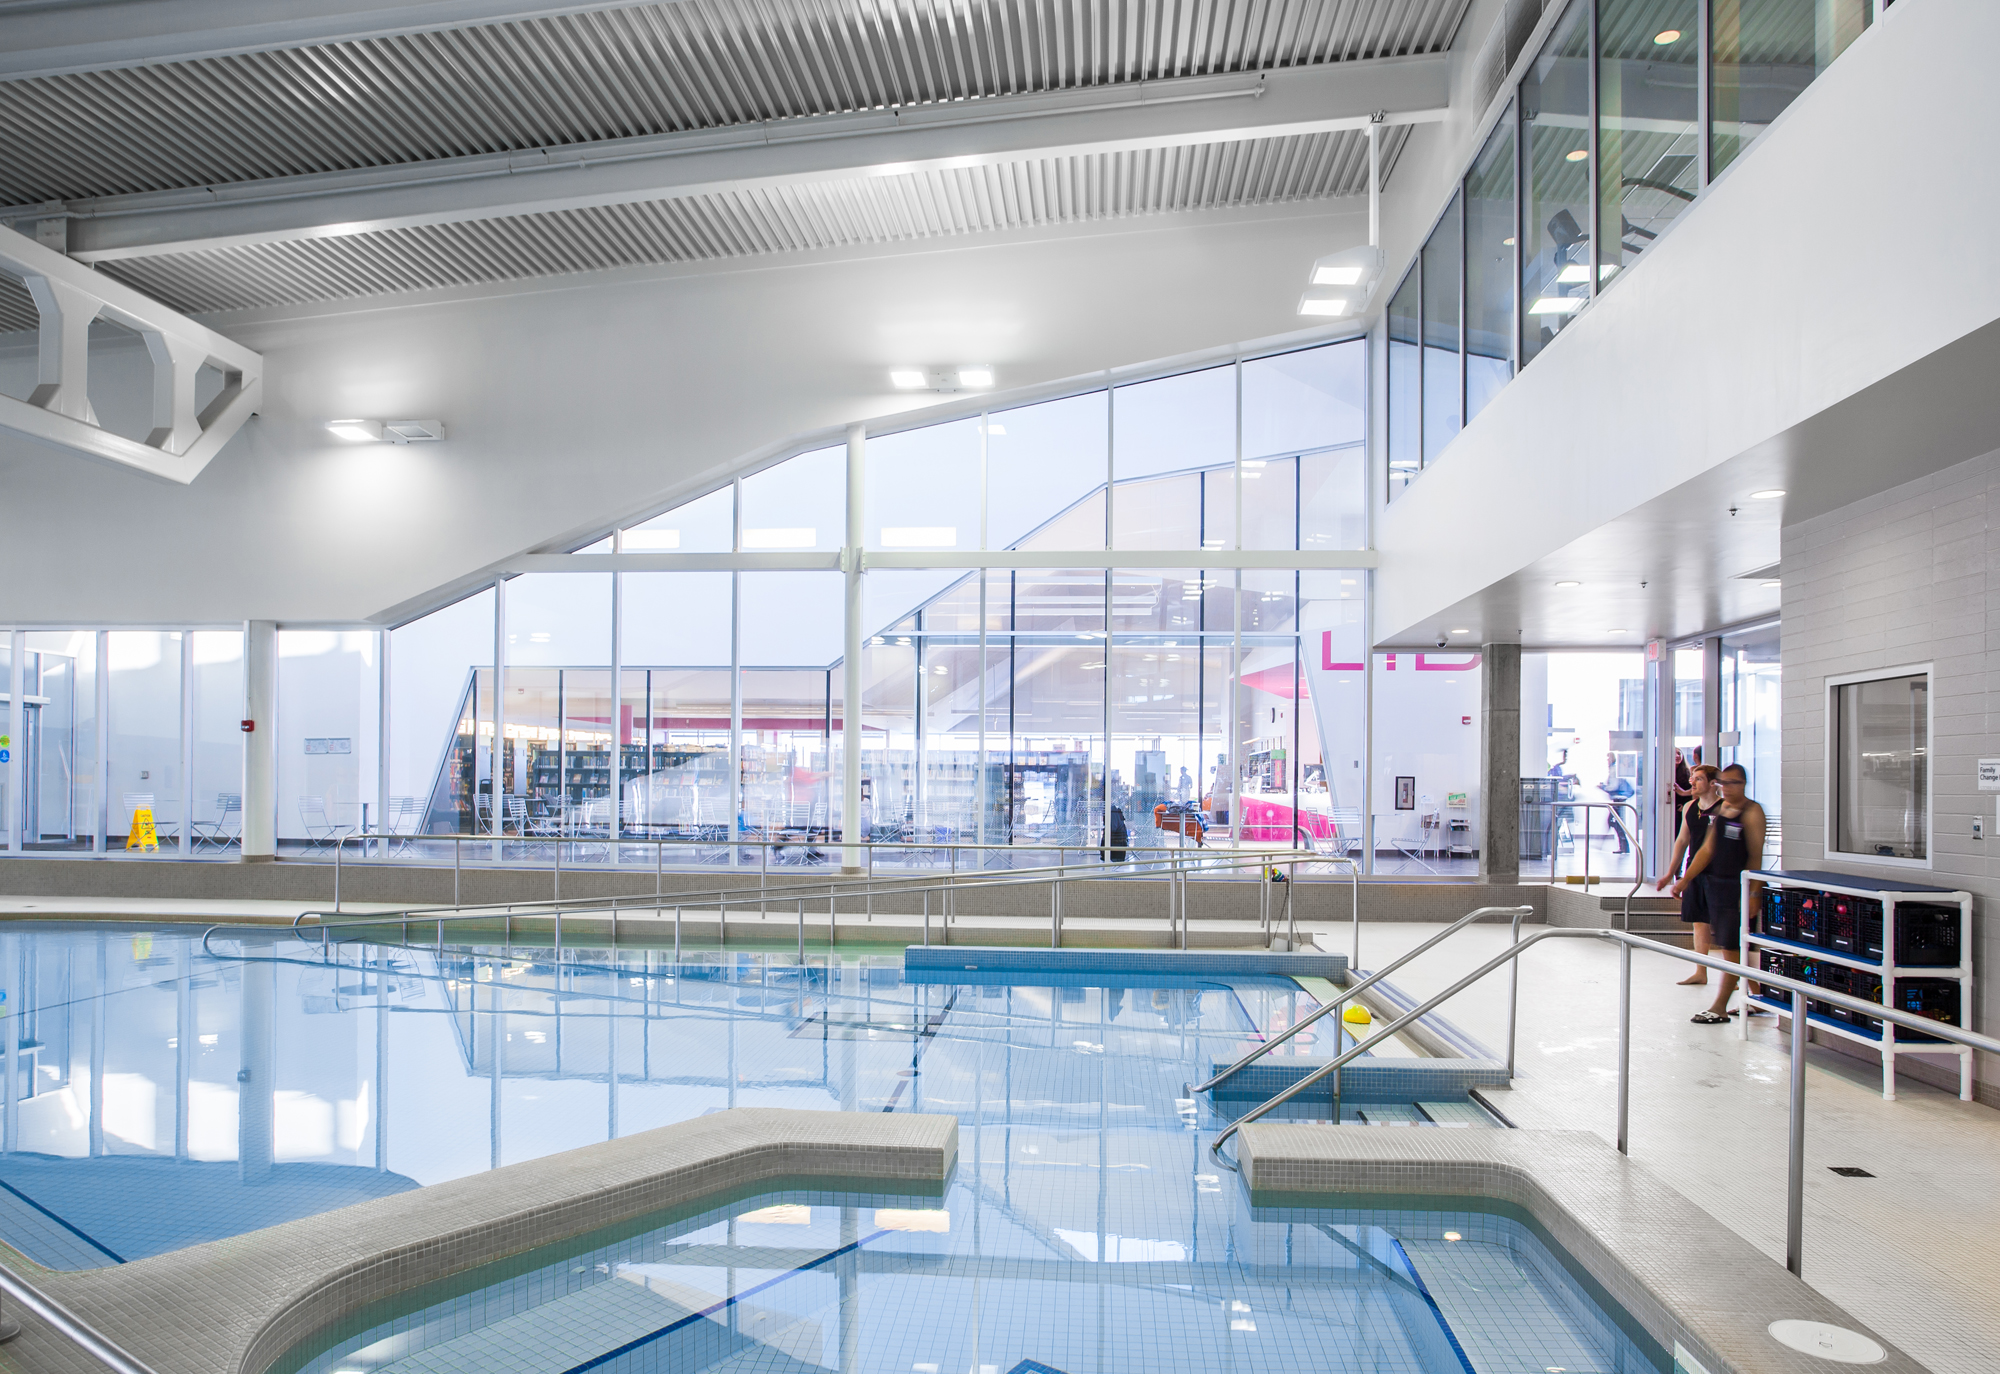 John m harper branch library stork family ymca teeple architects for Waterloo rec centre swimming pool